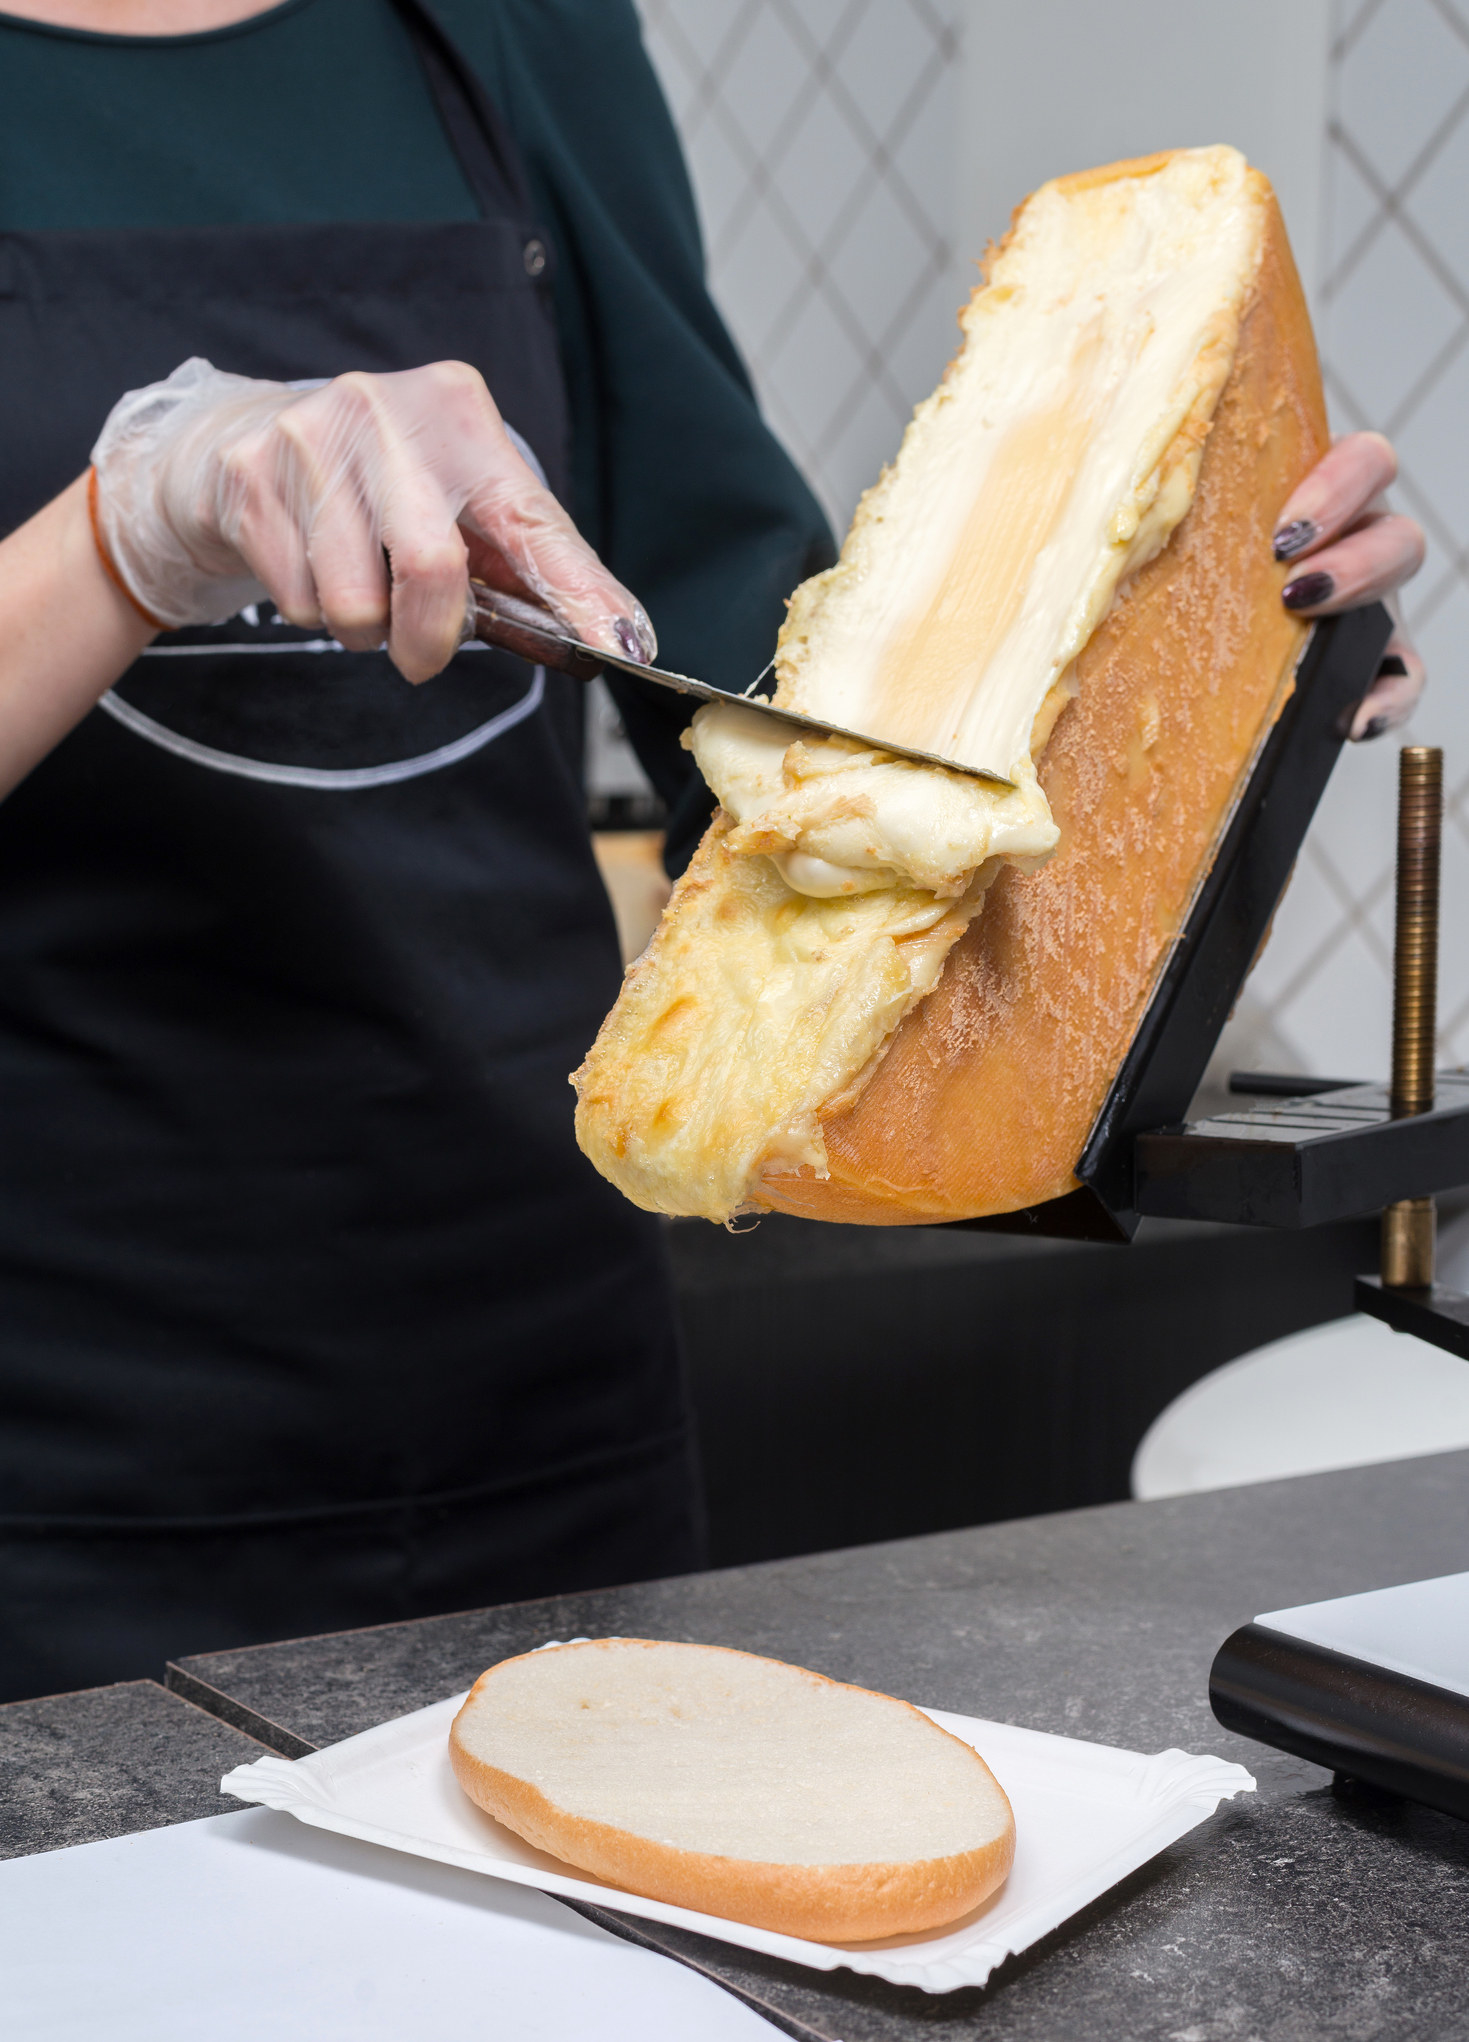 half a wheel of gooey melted cheese being scraped onto a piece of bread